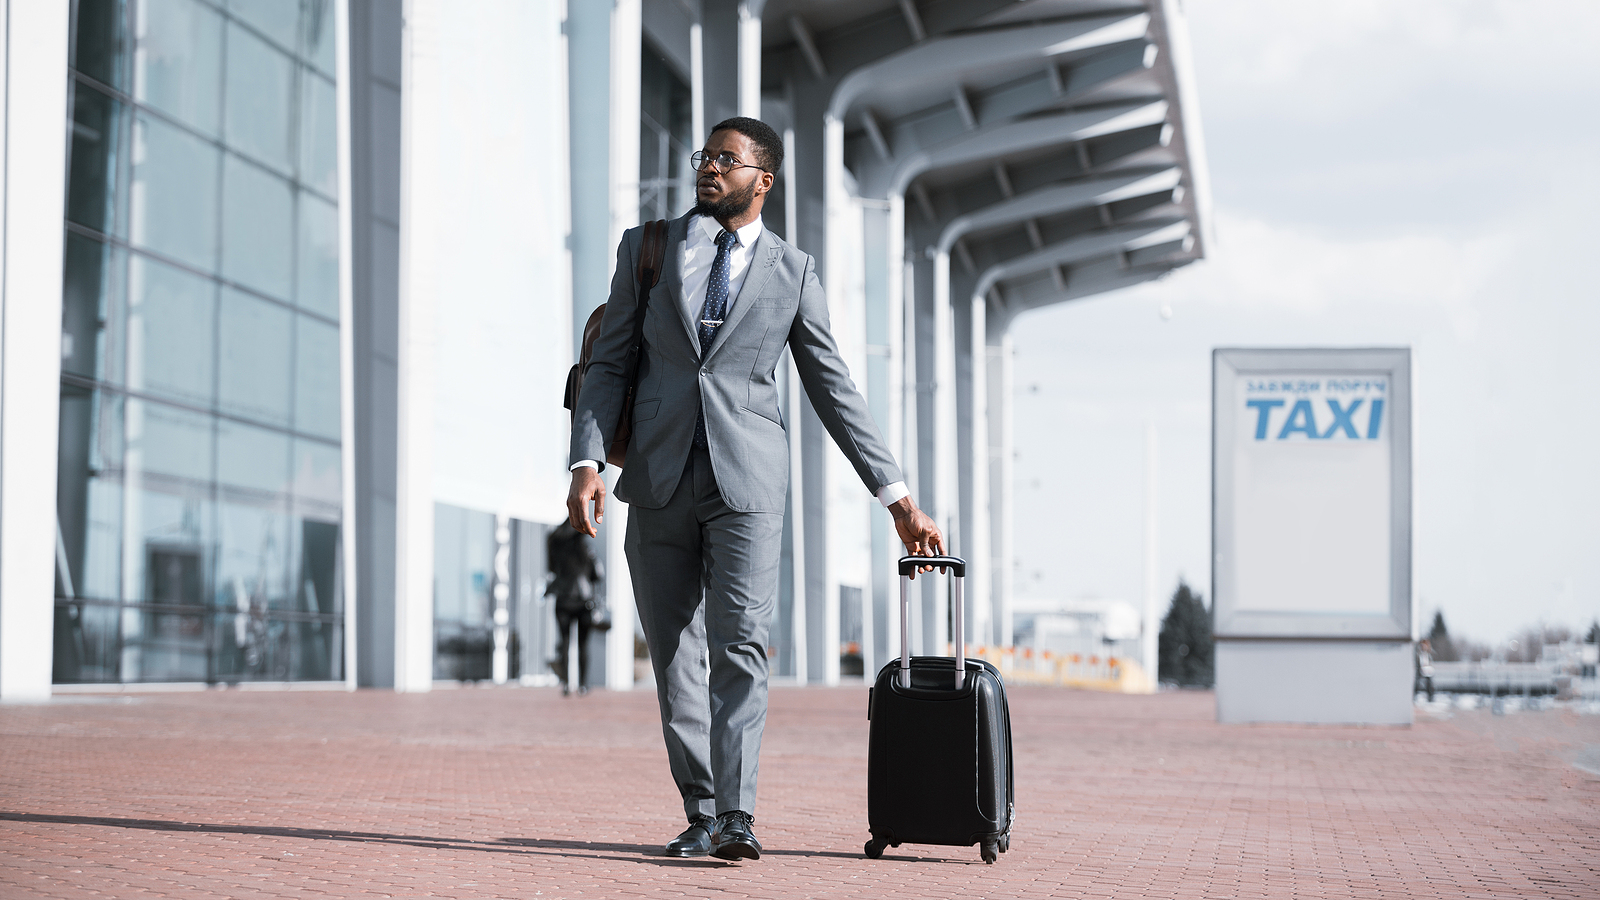 Are Serviced Apartments or Hotels More Cost Effective for Corporate Travel?